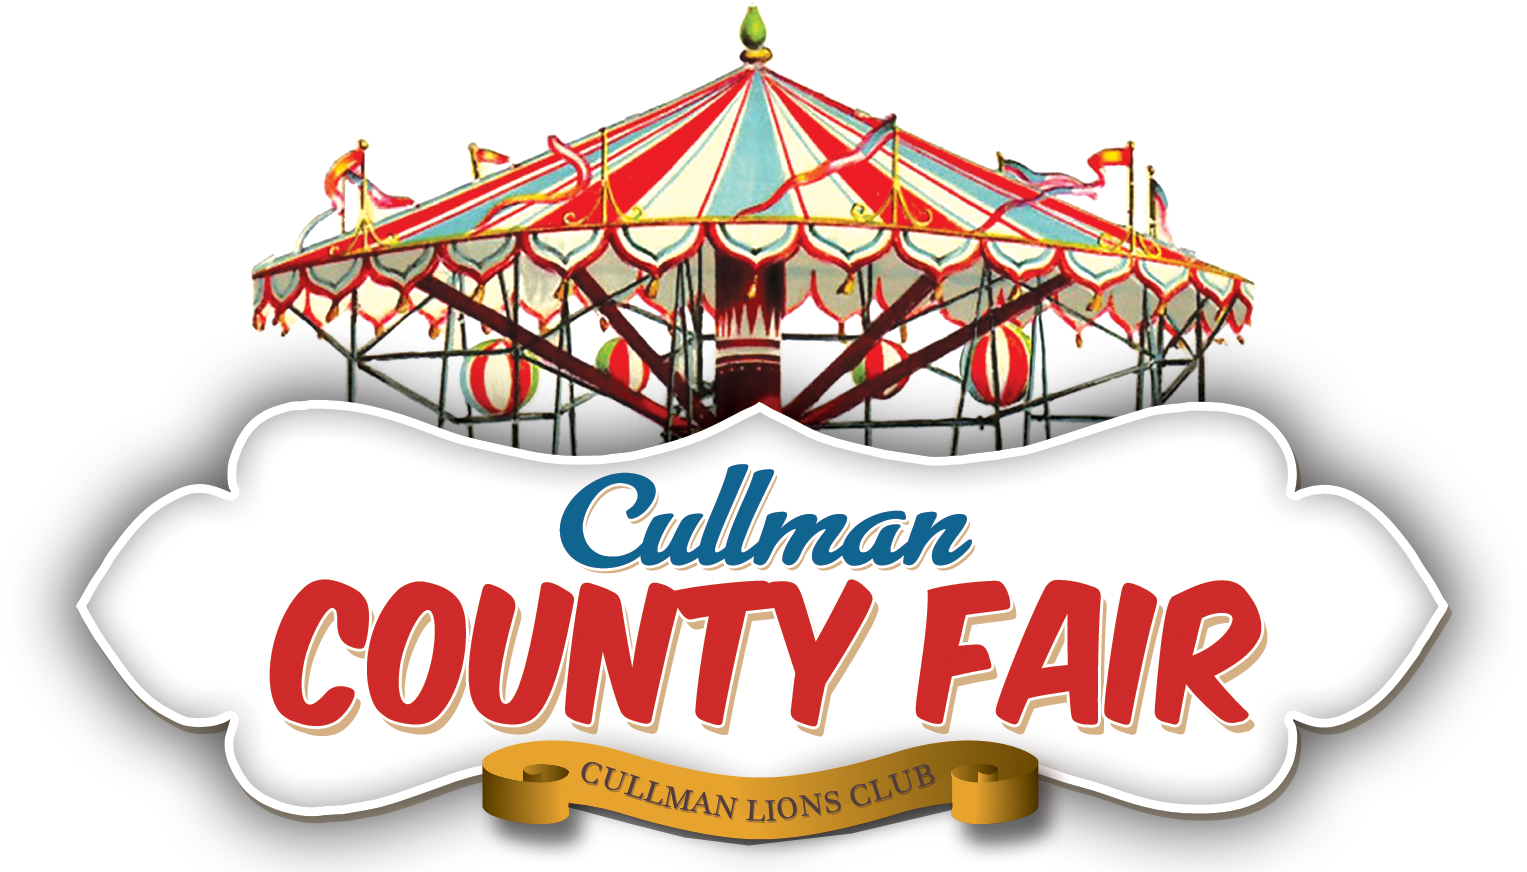 Cullman Co. Fair